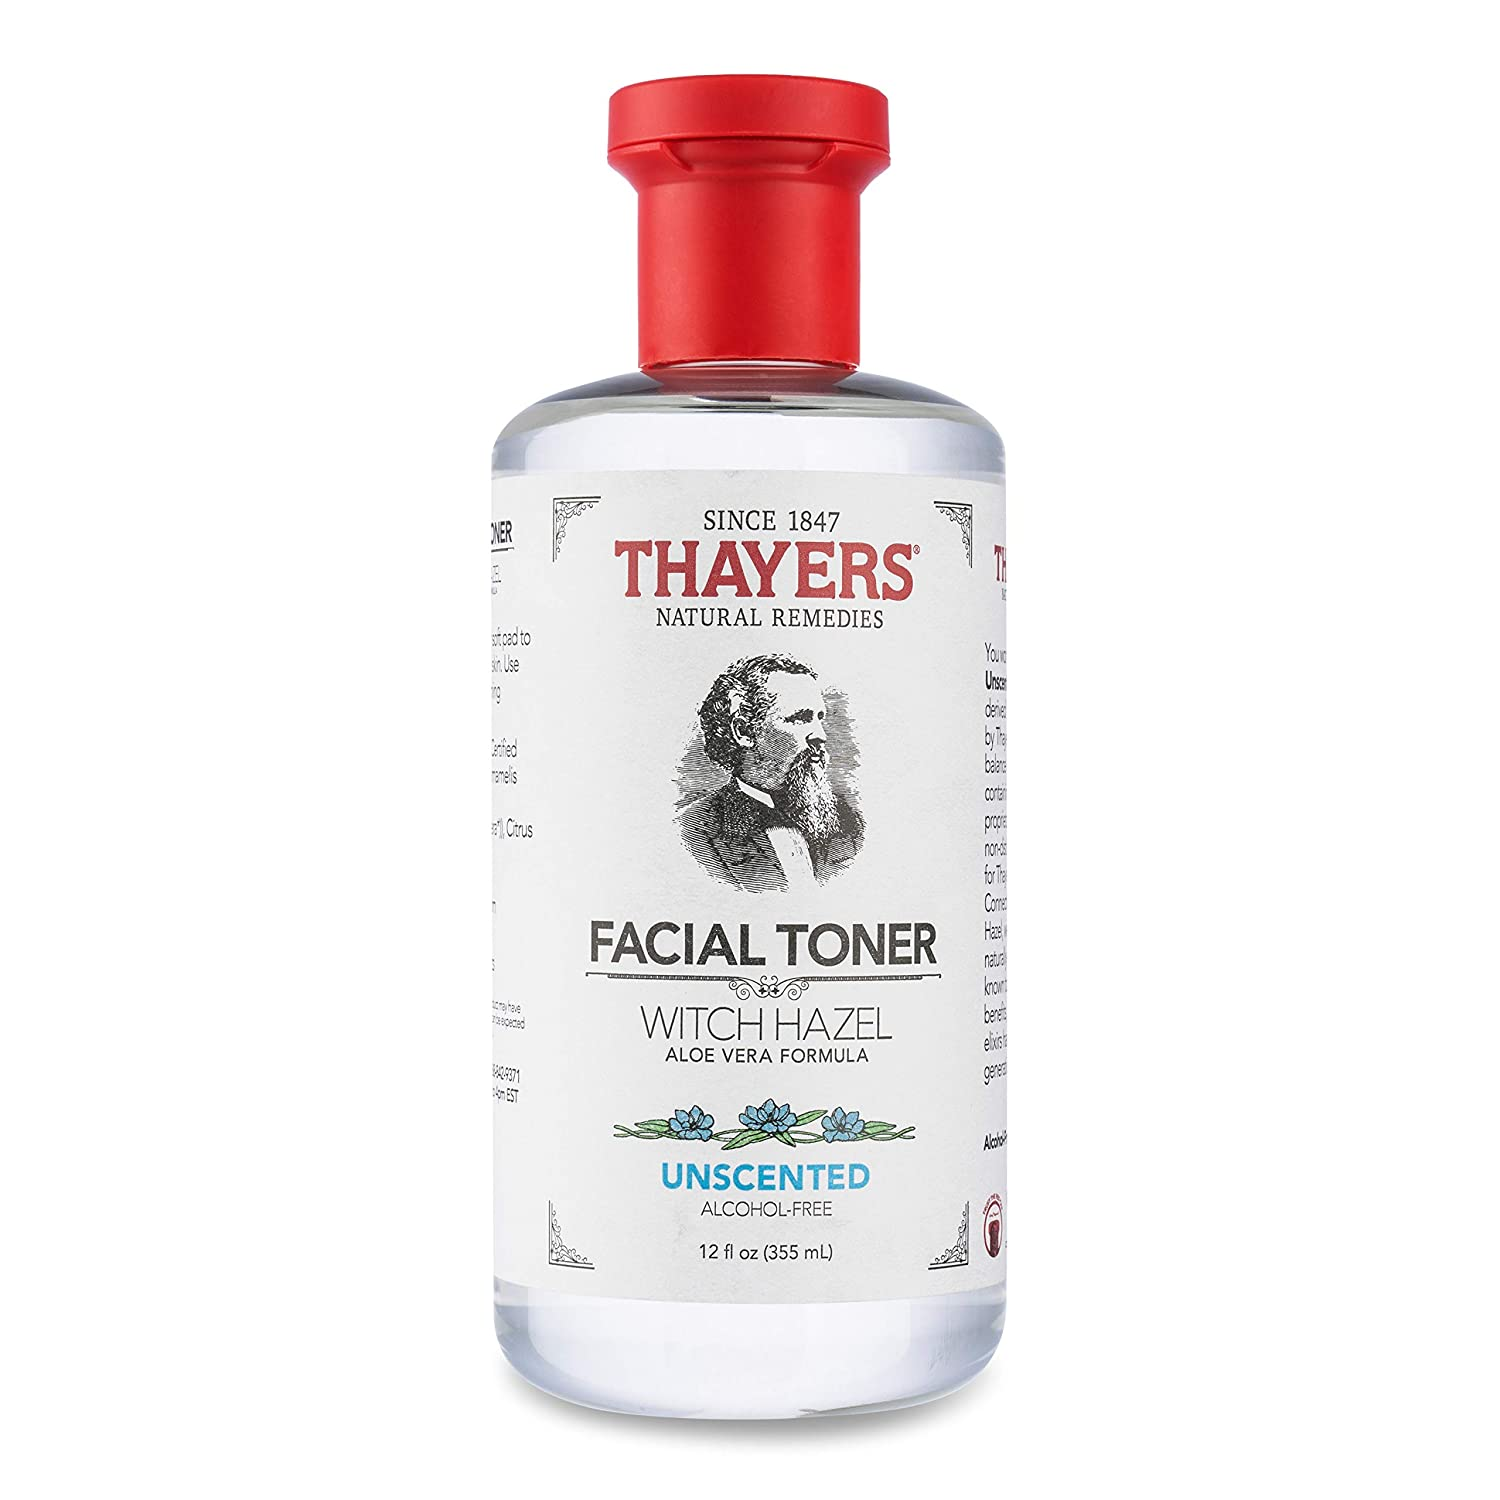 Thayers Alcohol-Free Unscented Witch Hazel Facial Toner with Aloe Vera Formula